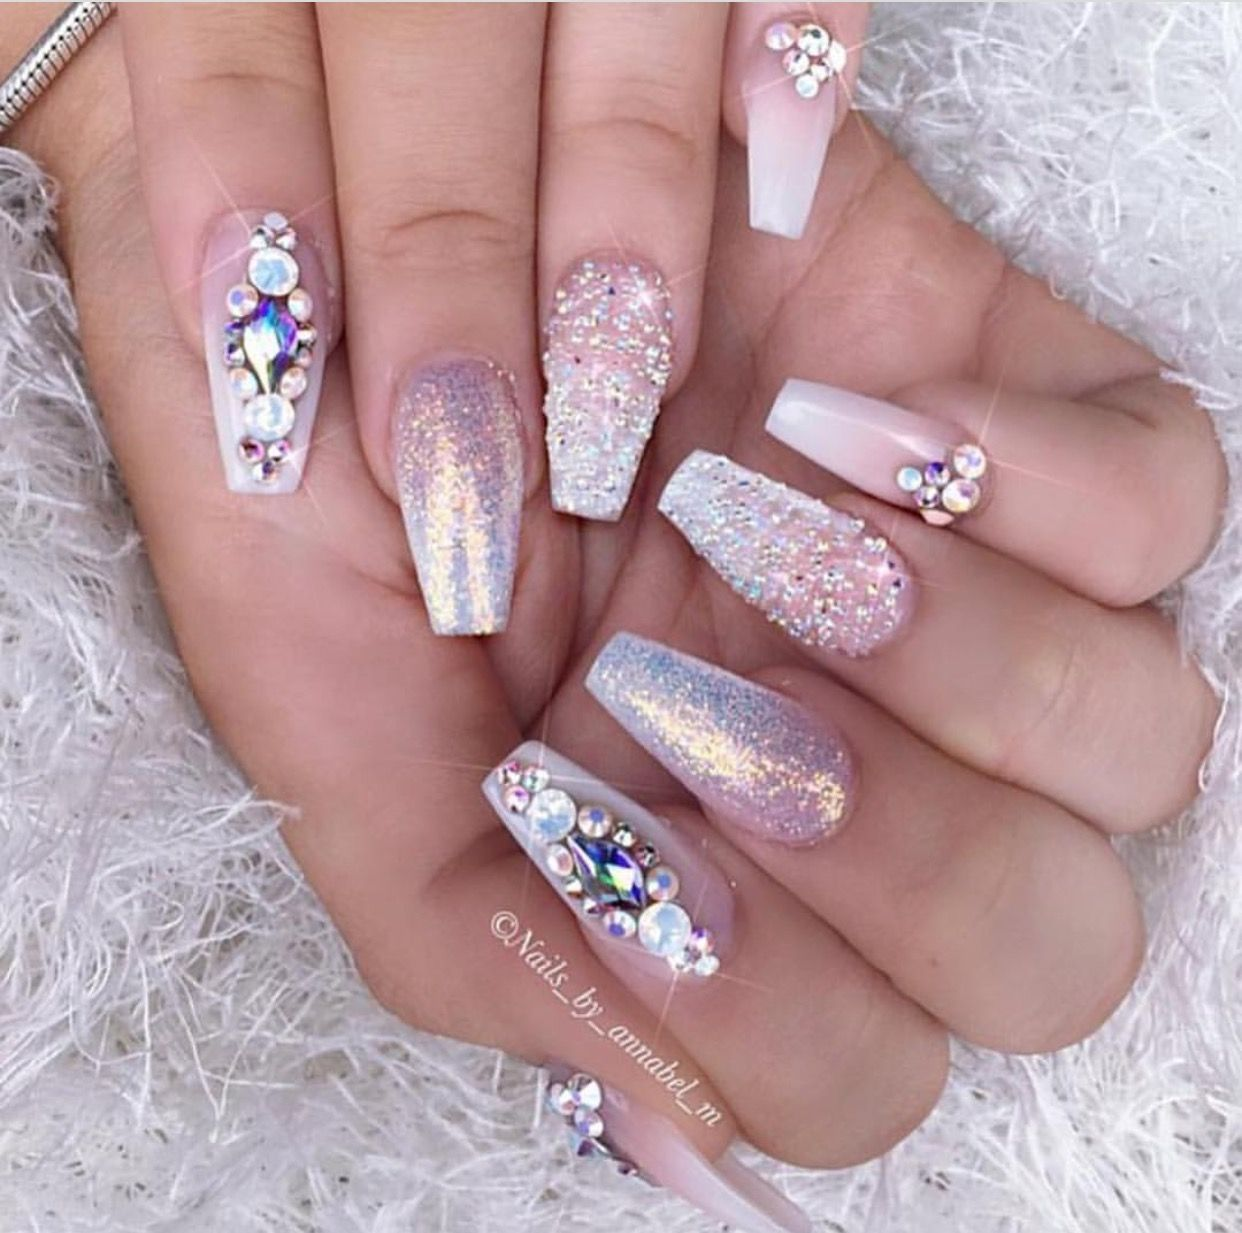 Bling pretty in pink nails | NΔILS | Pinterest | Pink nails, Bling ...